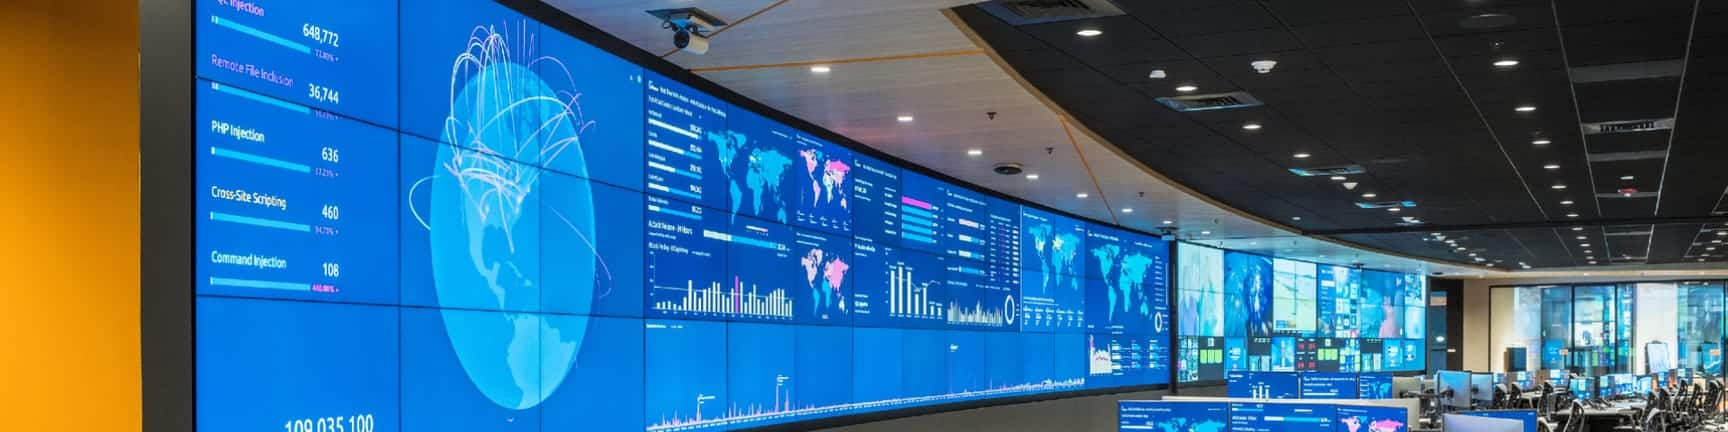 large, curved video wall